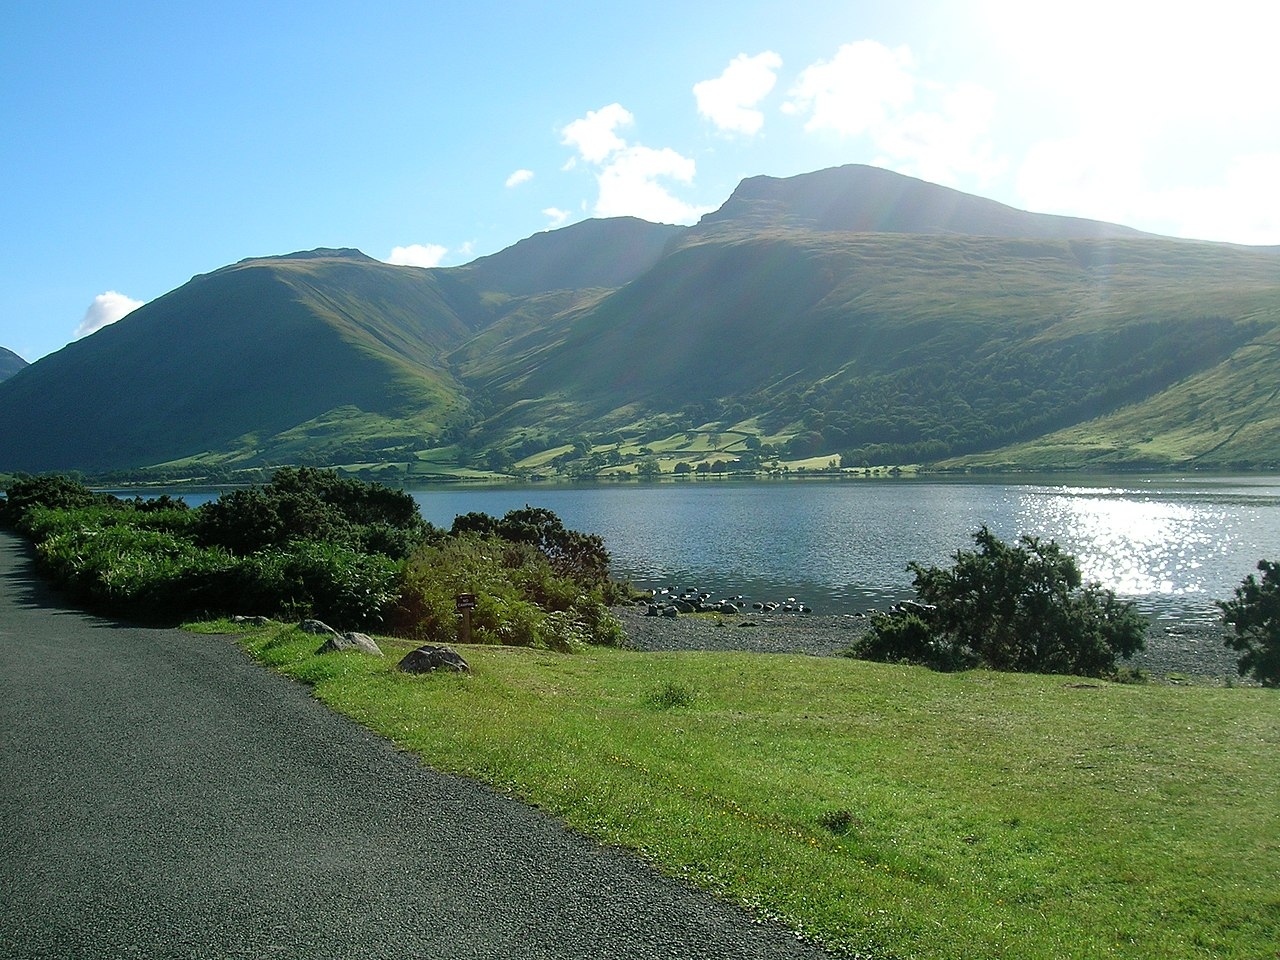 Scafell Pike, England's Tallest Mountain